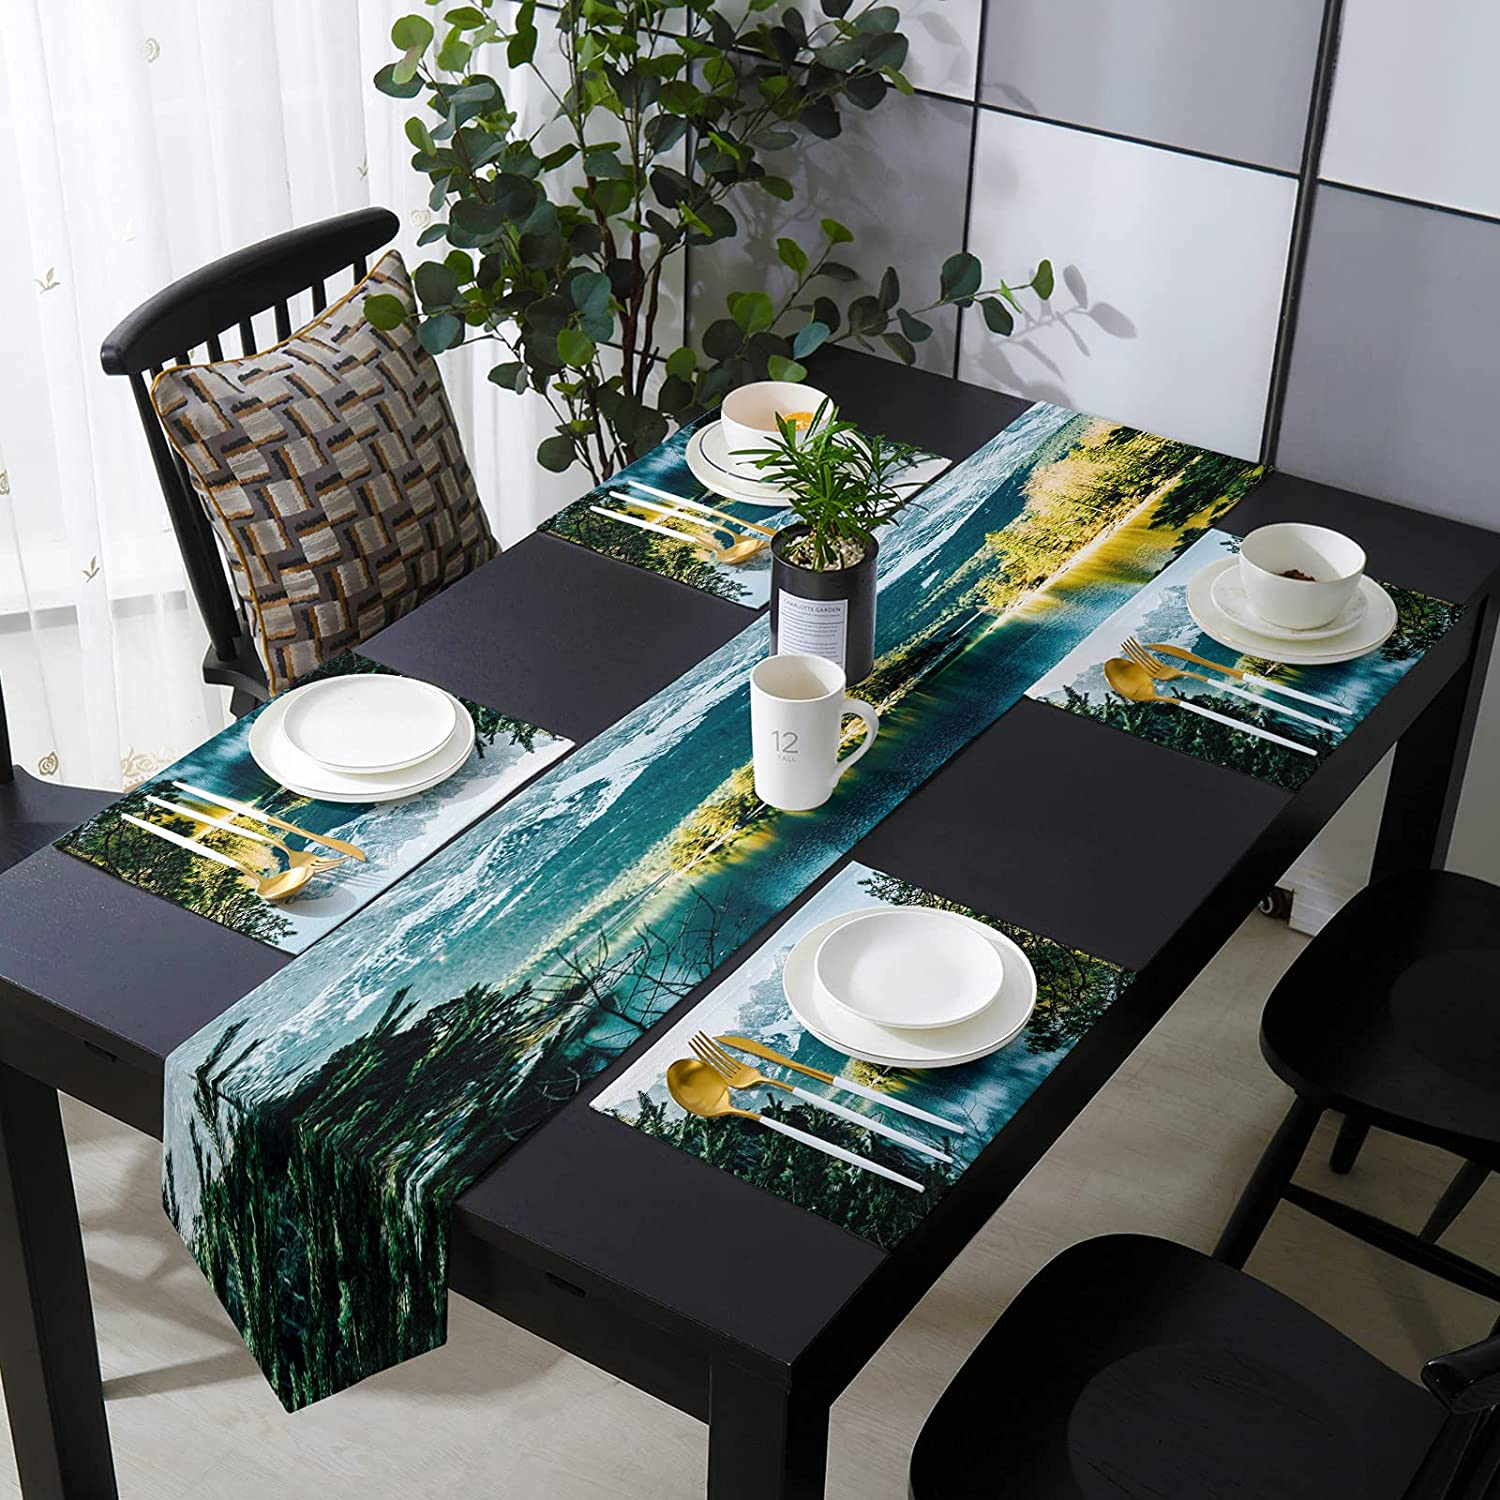 Aomike Placemats Japan's largest assortment and Table Runner 13 x Set Max 50% OFF 90 Dining Ta inch for